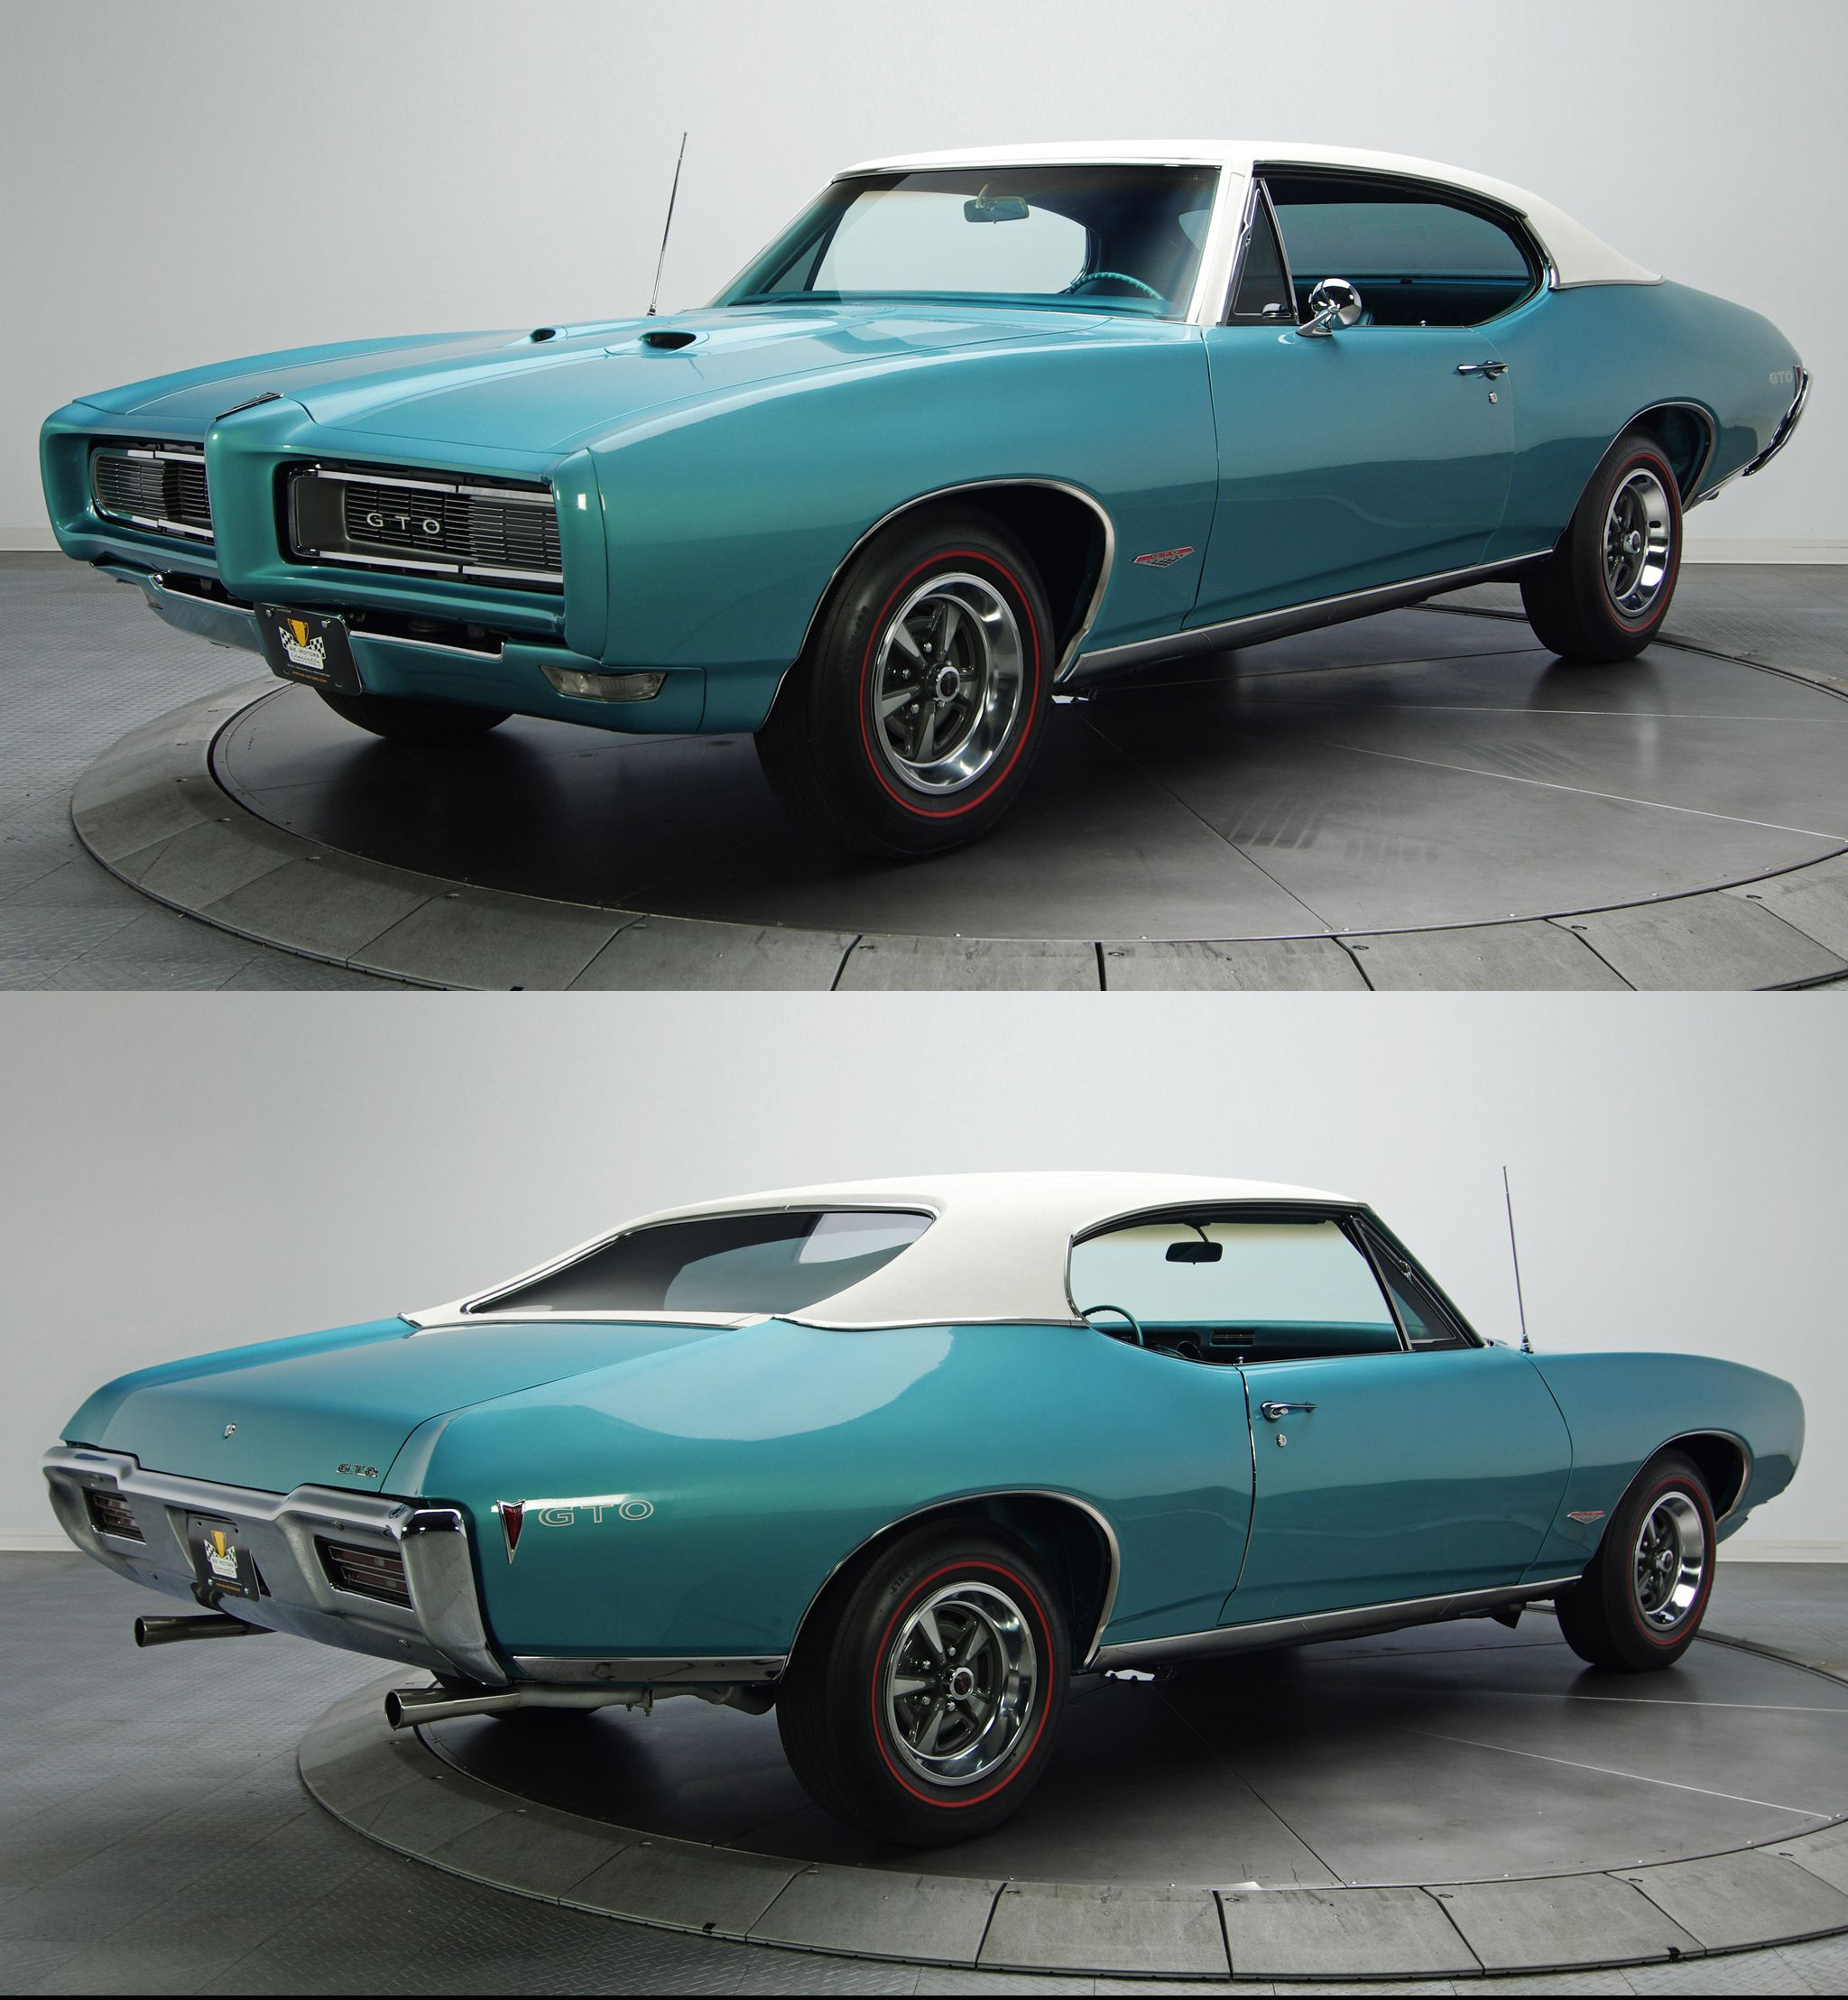 1968 Pontiac GTO ,I Usually Like The More Custom Classic's